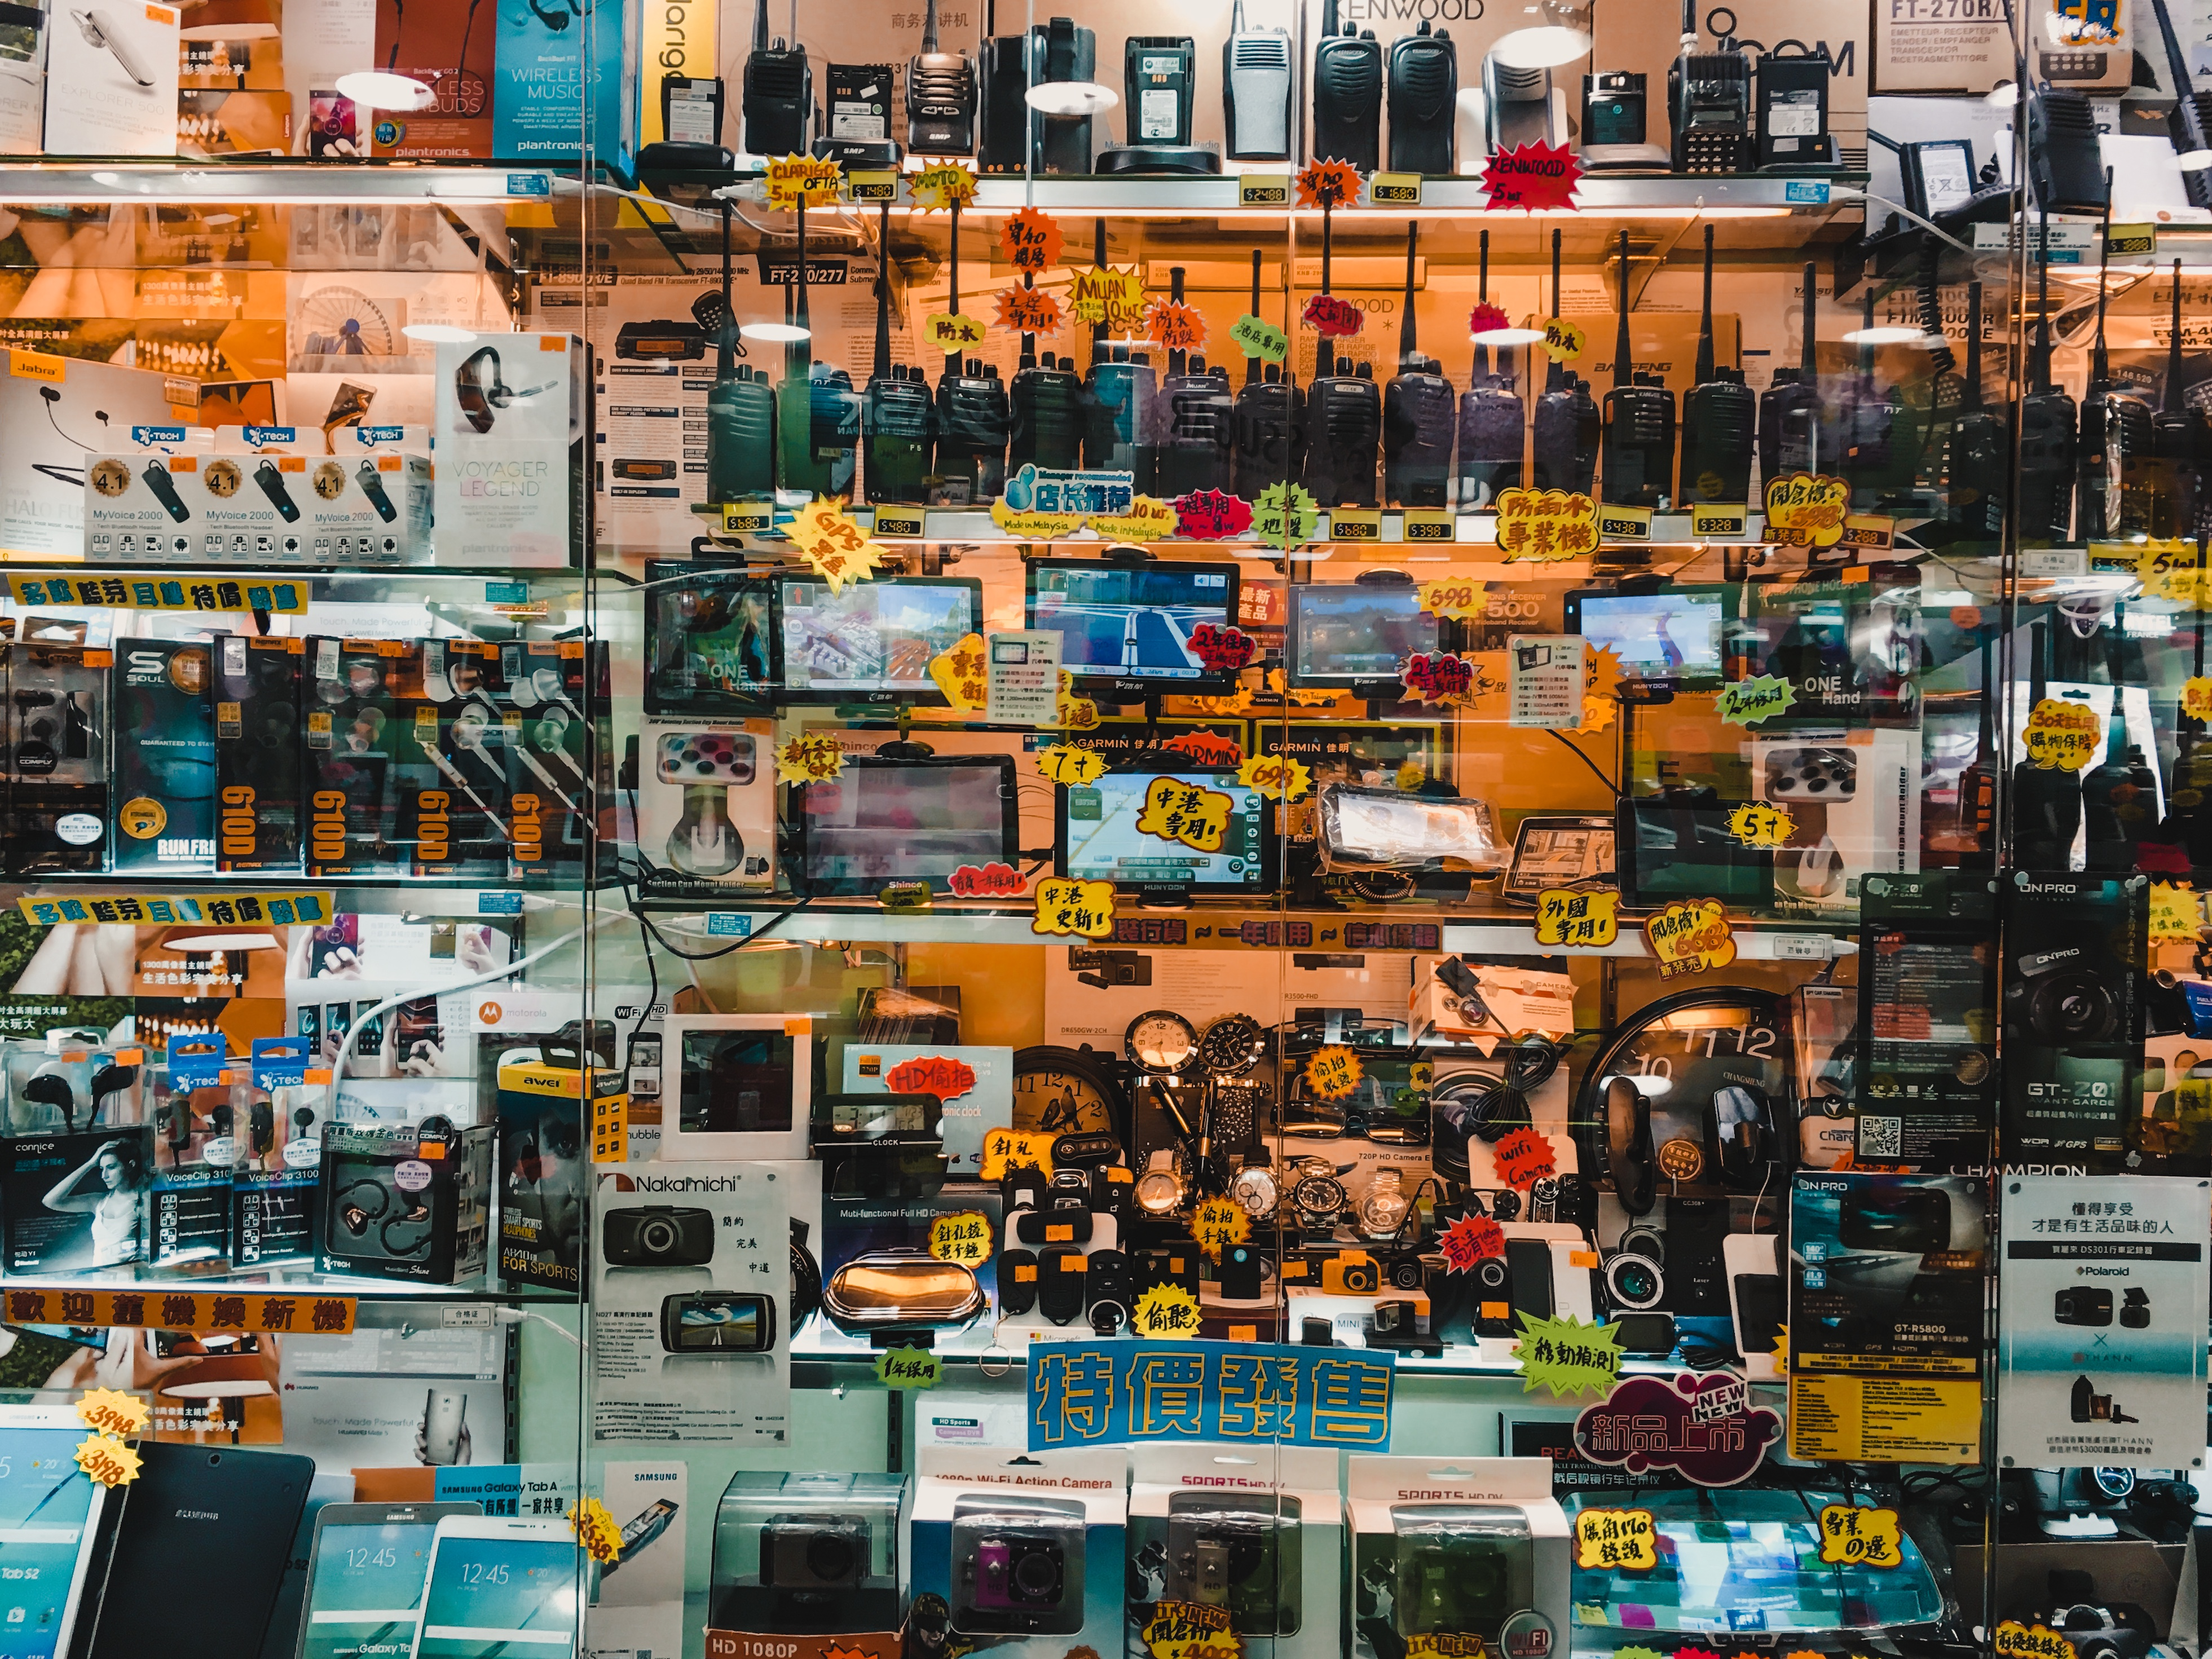 Electronics store in Chungking Mansions